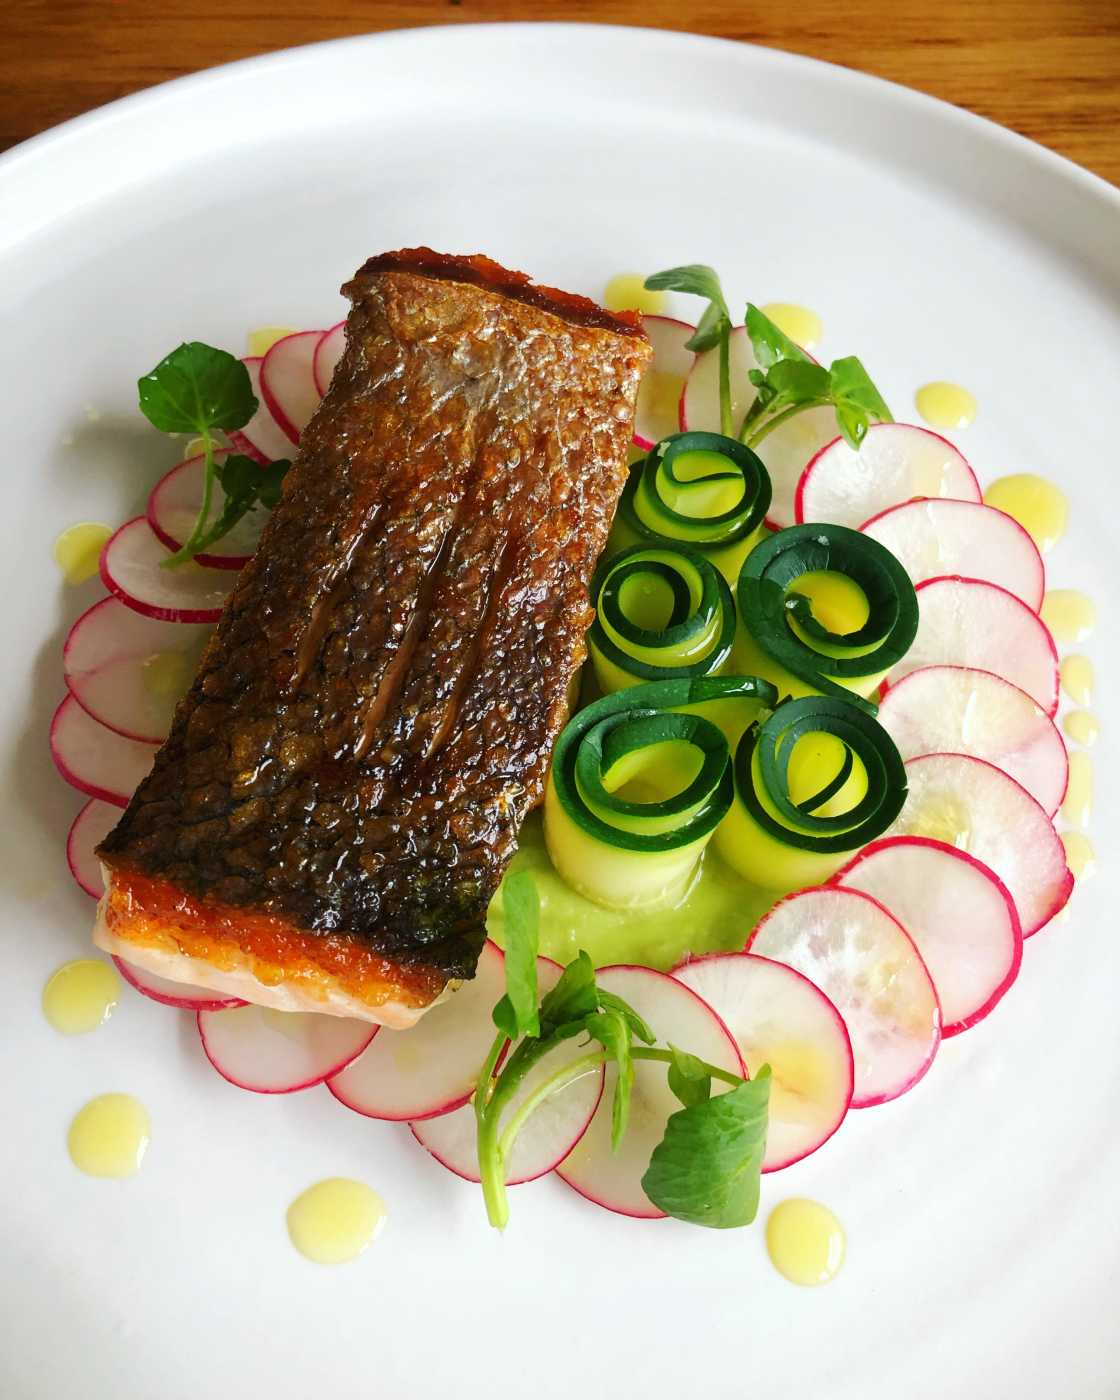 Crispy skin salmon, avocado purée, courgette ribbons, radish & watercress.